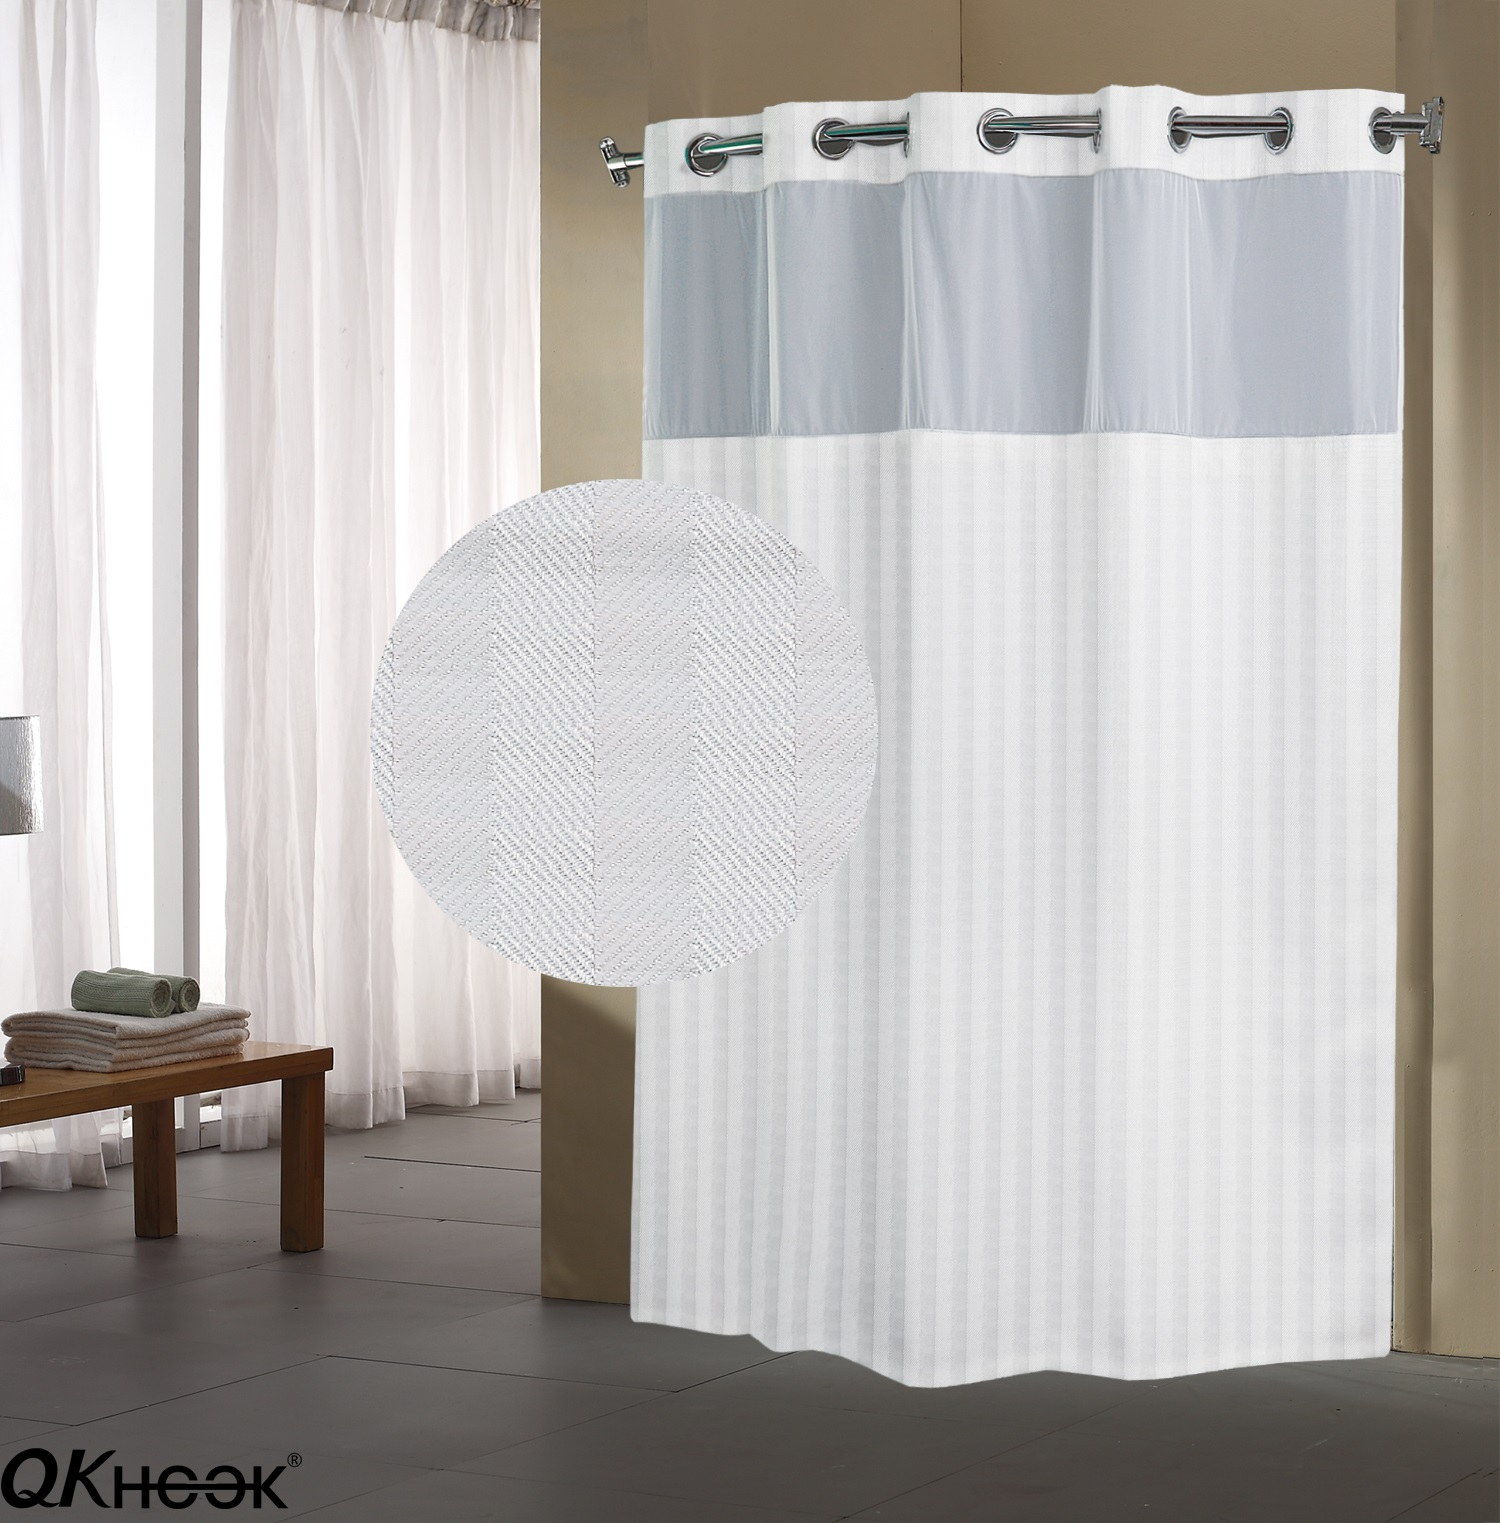 qkhook hookless shower curtain with snap in liner 1 pack 71x74 inches herringbone pattern fabric water repellent walmart com